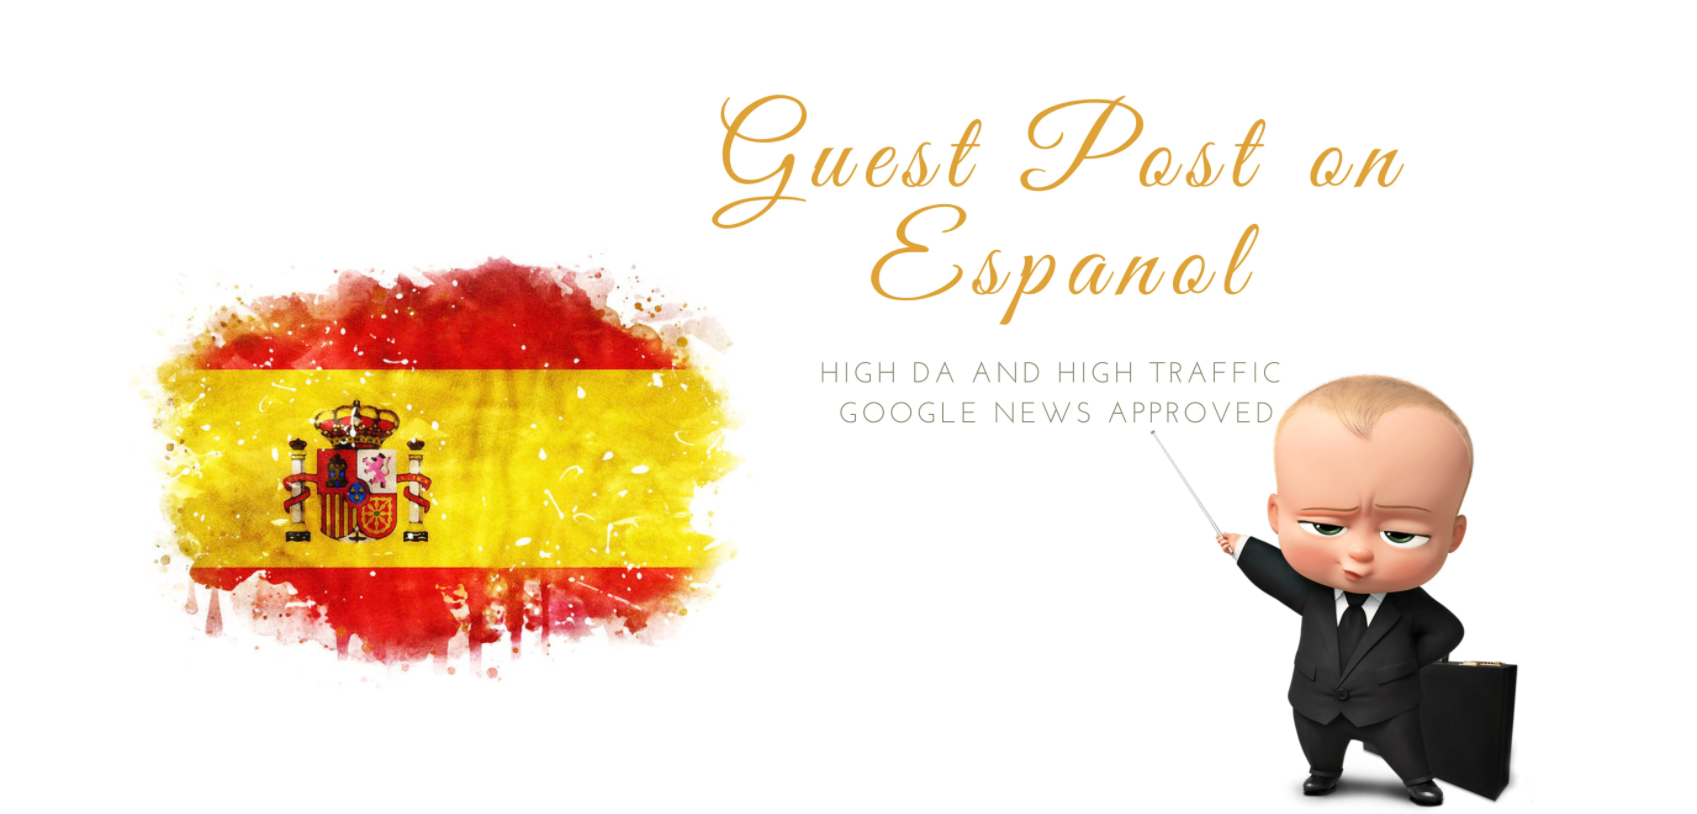 Do guest post on Spanish sites